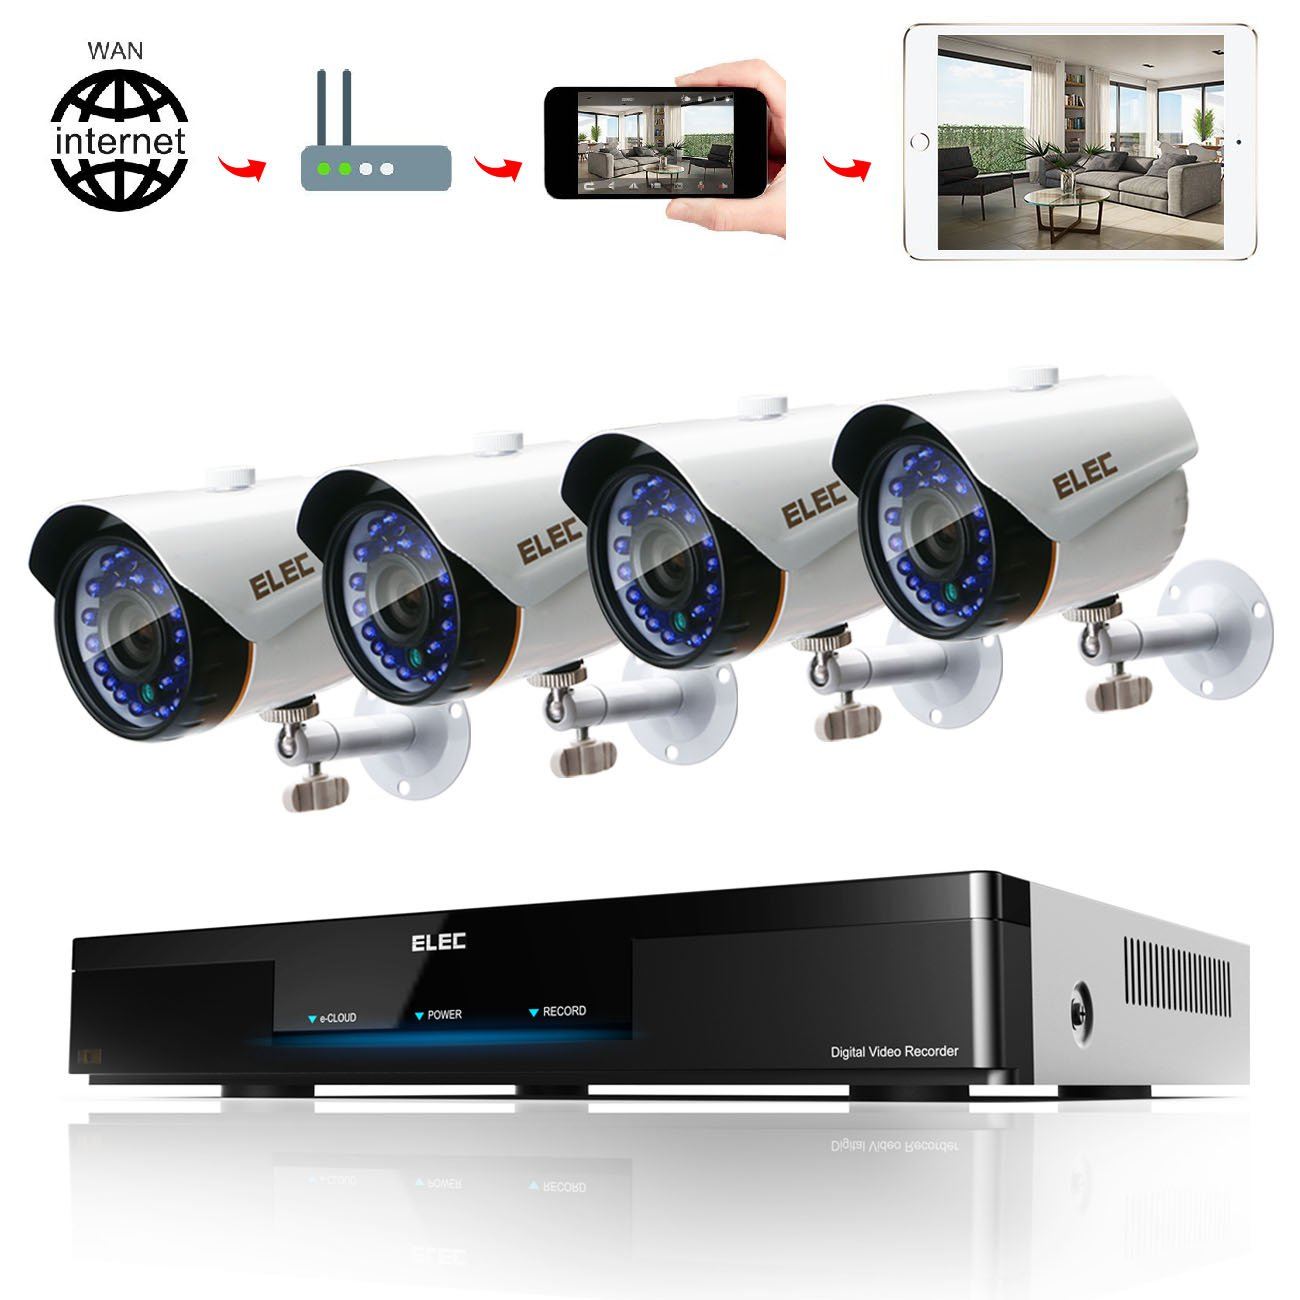 ELEC 8CH 1080N AHD In/Outdoor Home Security Camera System CCTV Monitoring Video Surveillance DVR Kit with 4Pcs 2000TVL IP66 65Feet Night Vision Cameras Remote Access Motion Alerts [No Hard Drive]